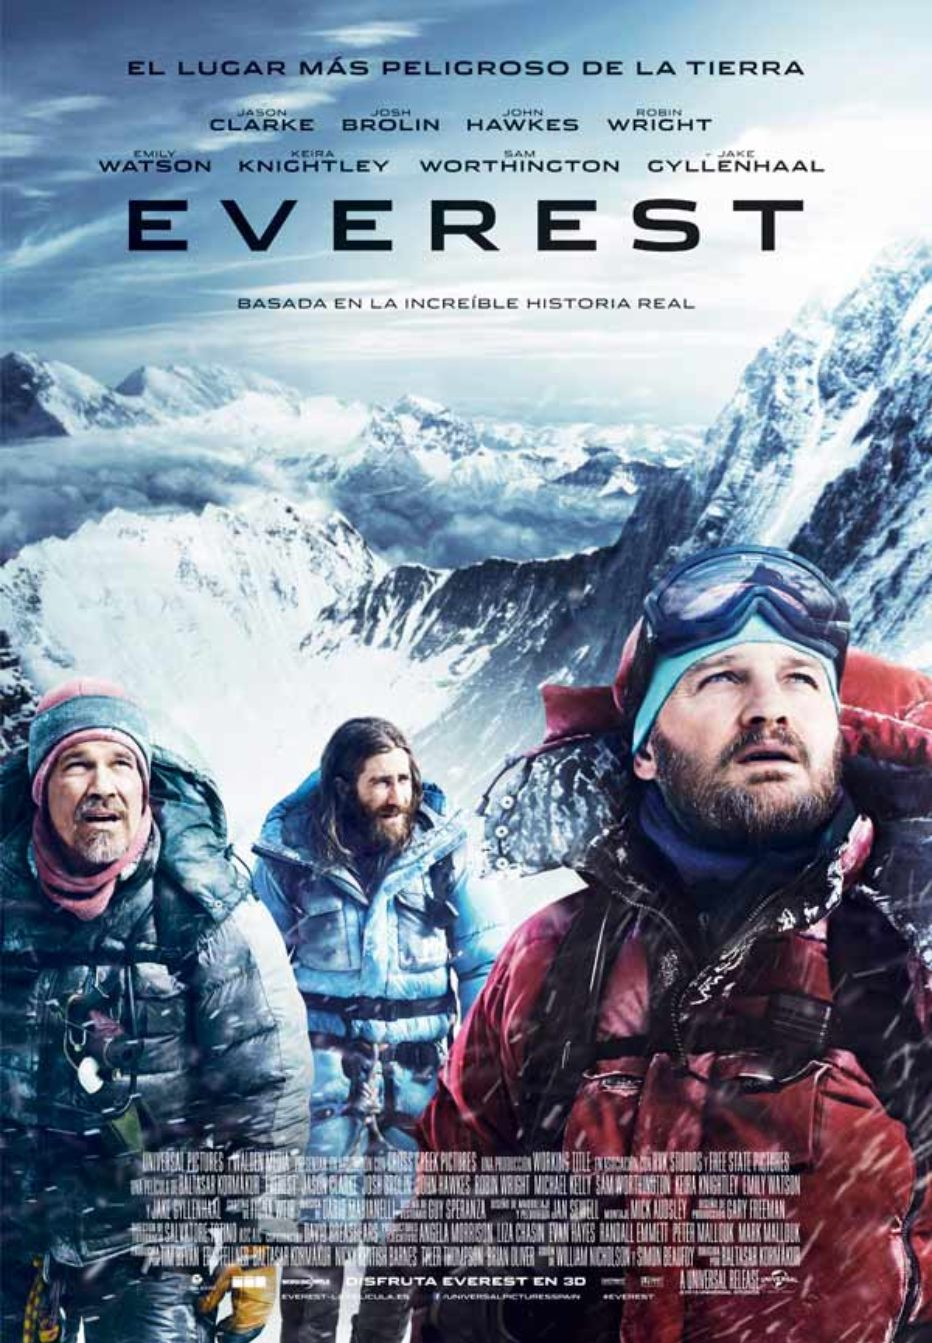 Everest, la cumbre borrascosa